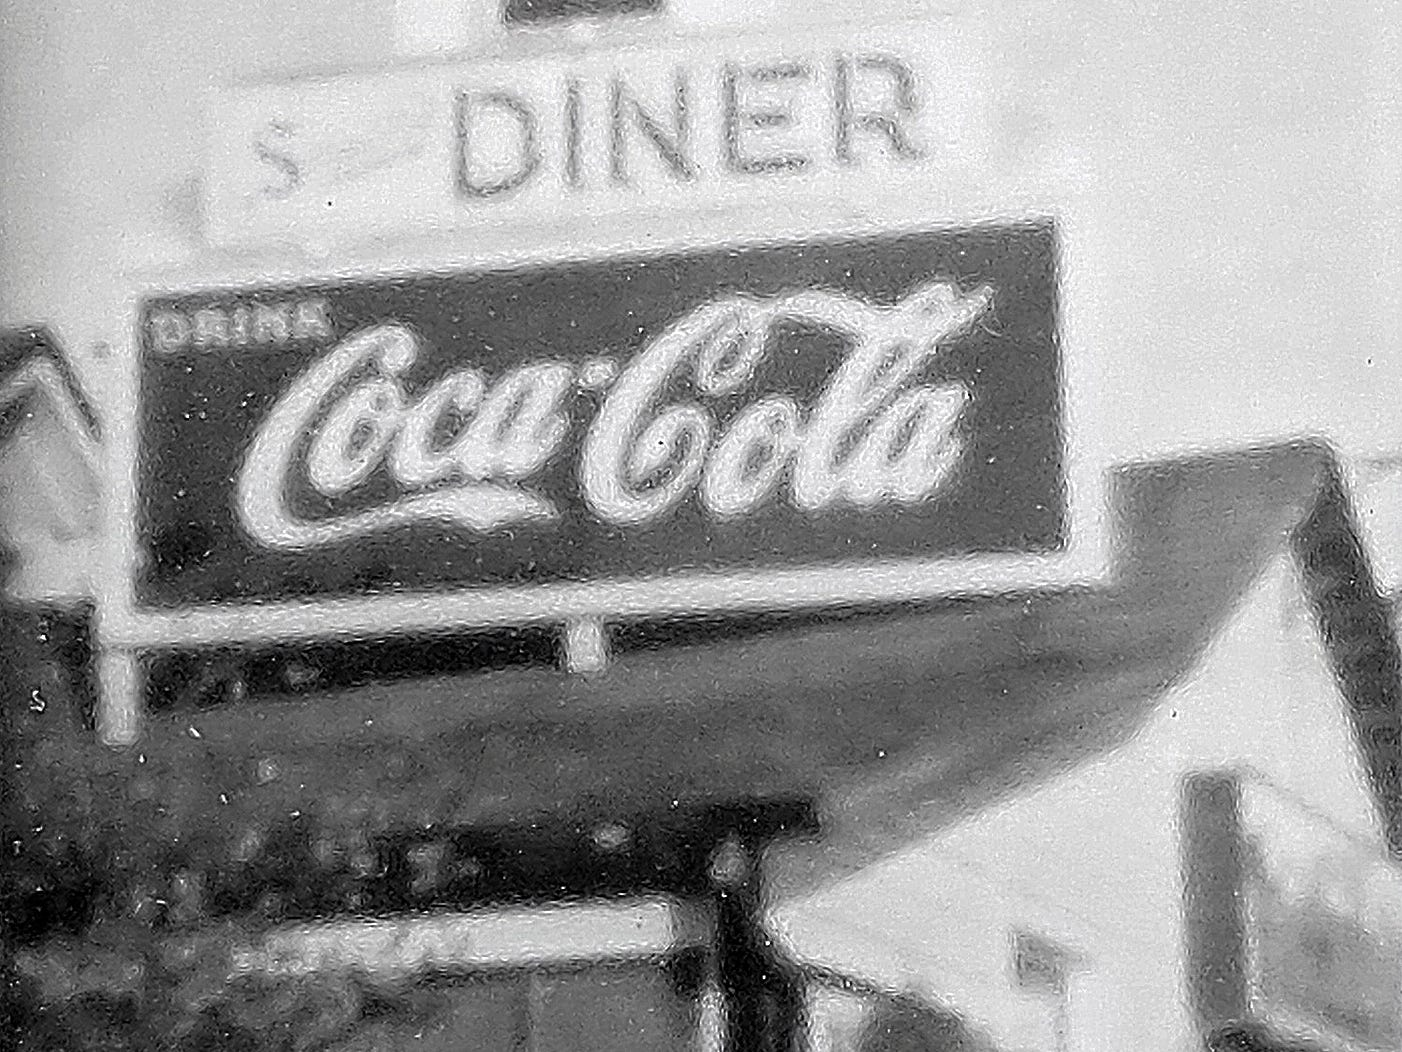 Smith's truck stop and diner was in Jacobus in 1940.